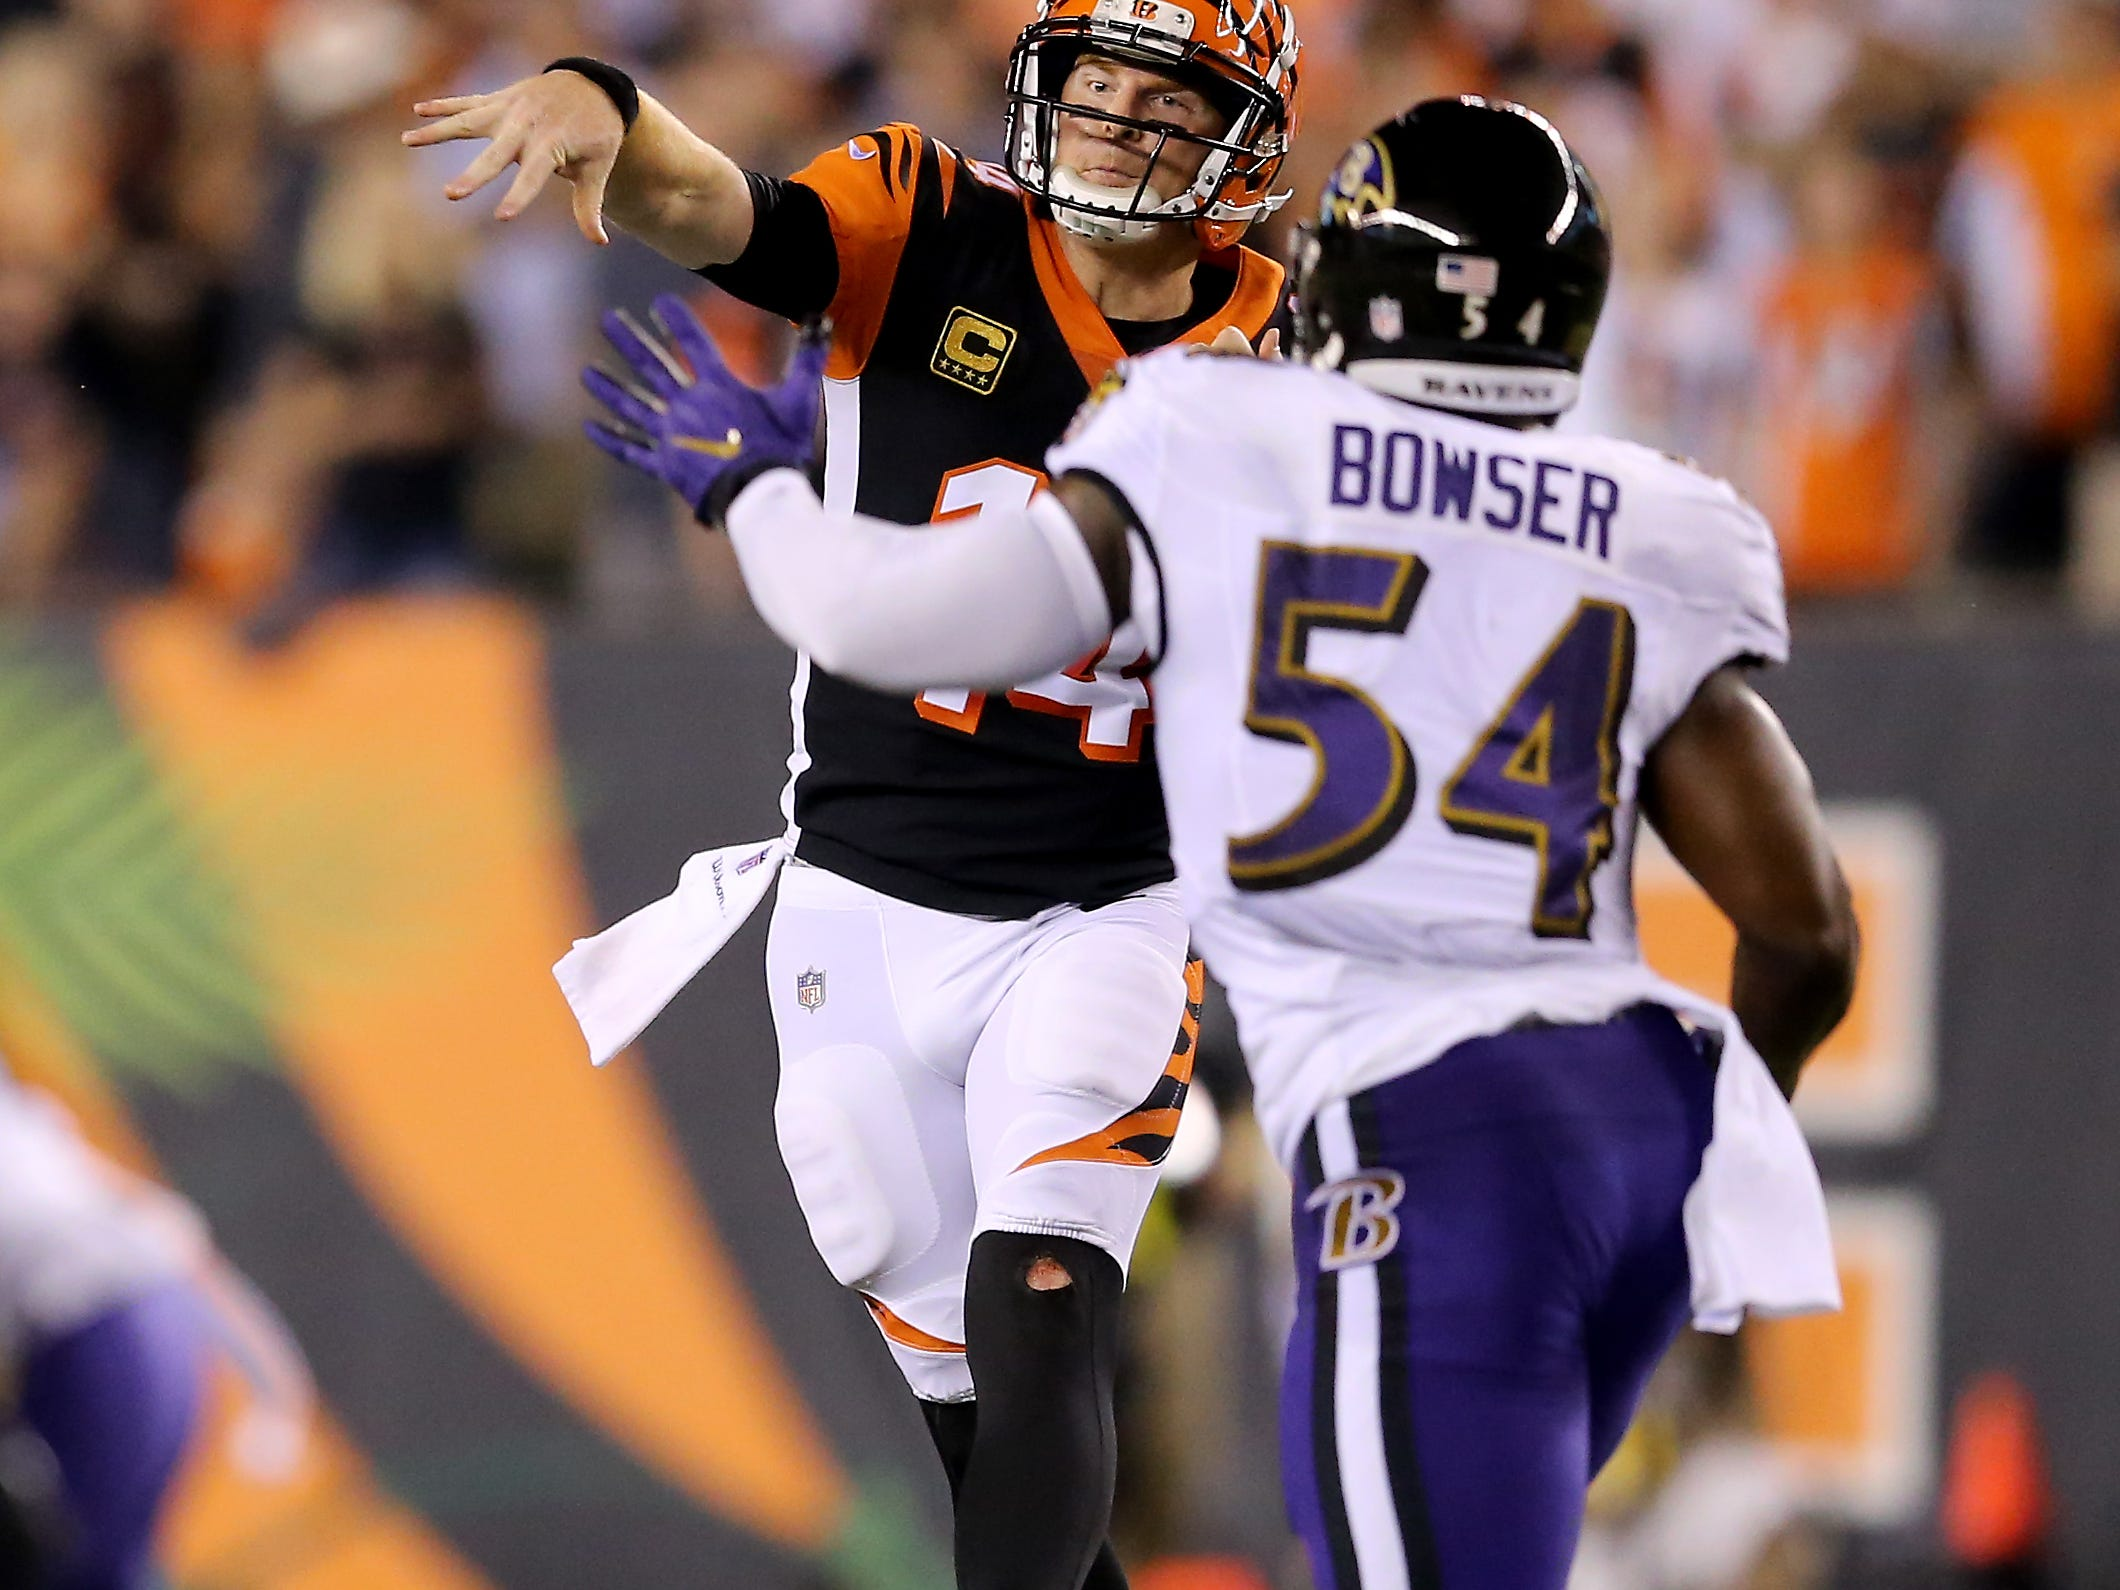 Cincinnati Bengals quarterback Andy Dalton (14) throws on the run in the first quarter during the Week 2 NFL football game between the Baltimore Ravens and the Cincinnati Bengals, Thursday, Sept. 13, 2018, Paul Brown Stadium in Cincinnati.